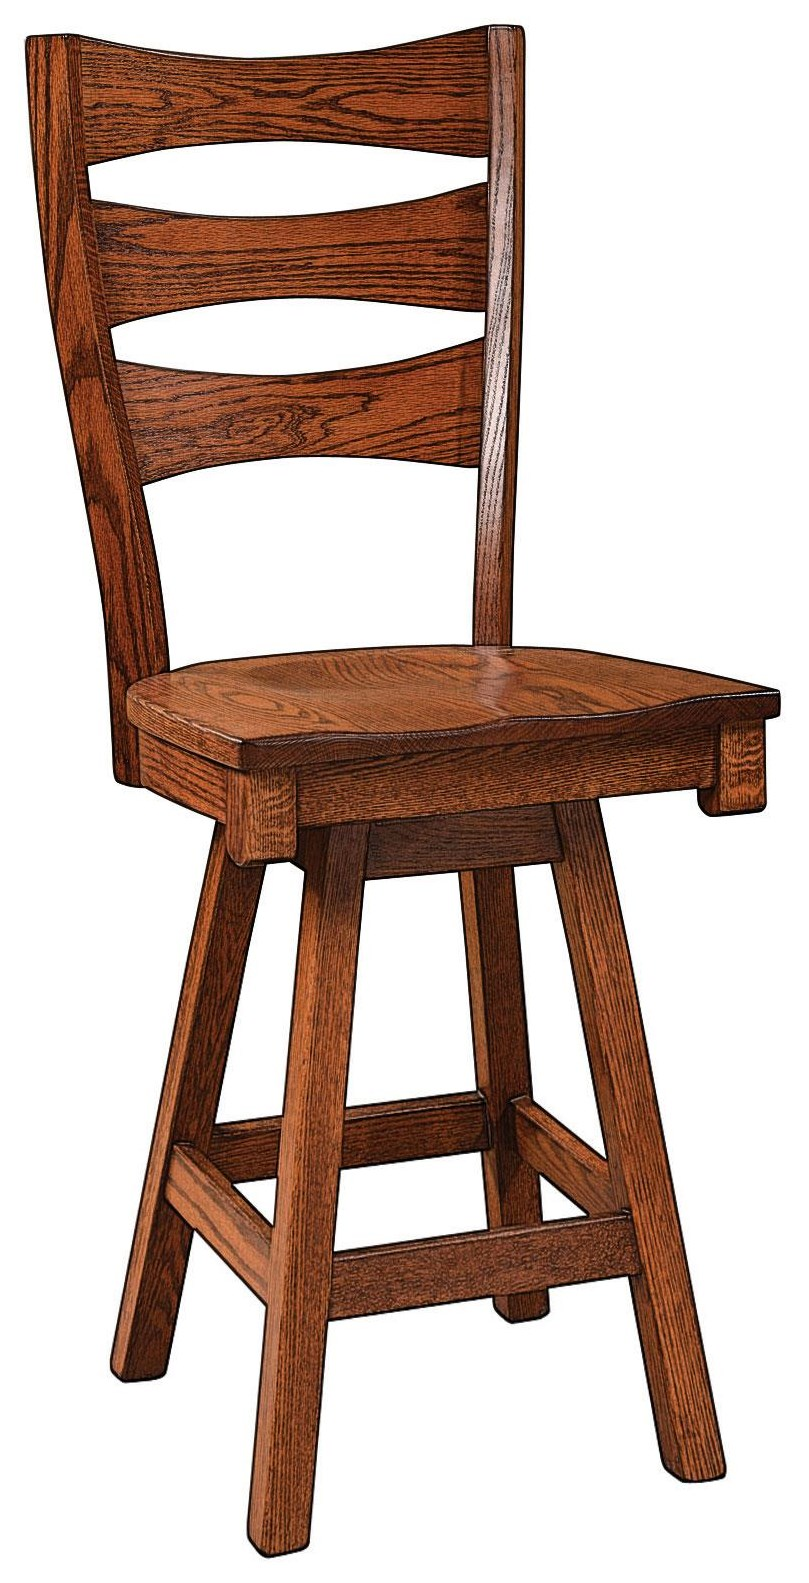 """Sierra 30"""" Swivel Stool by Wengerd Wood Products at Wayside Furniture"""